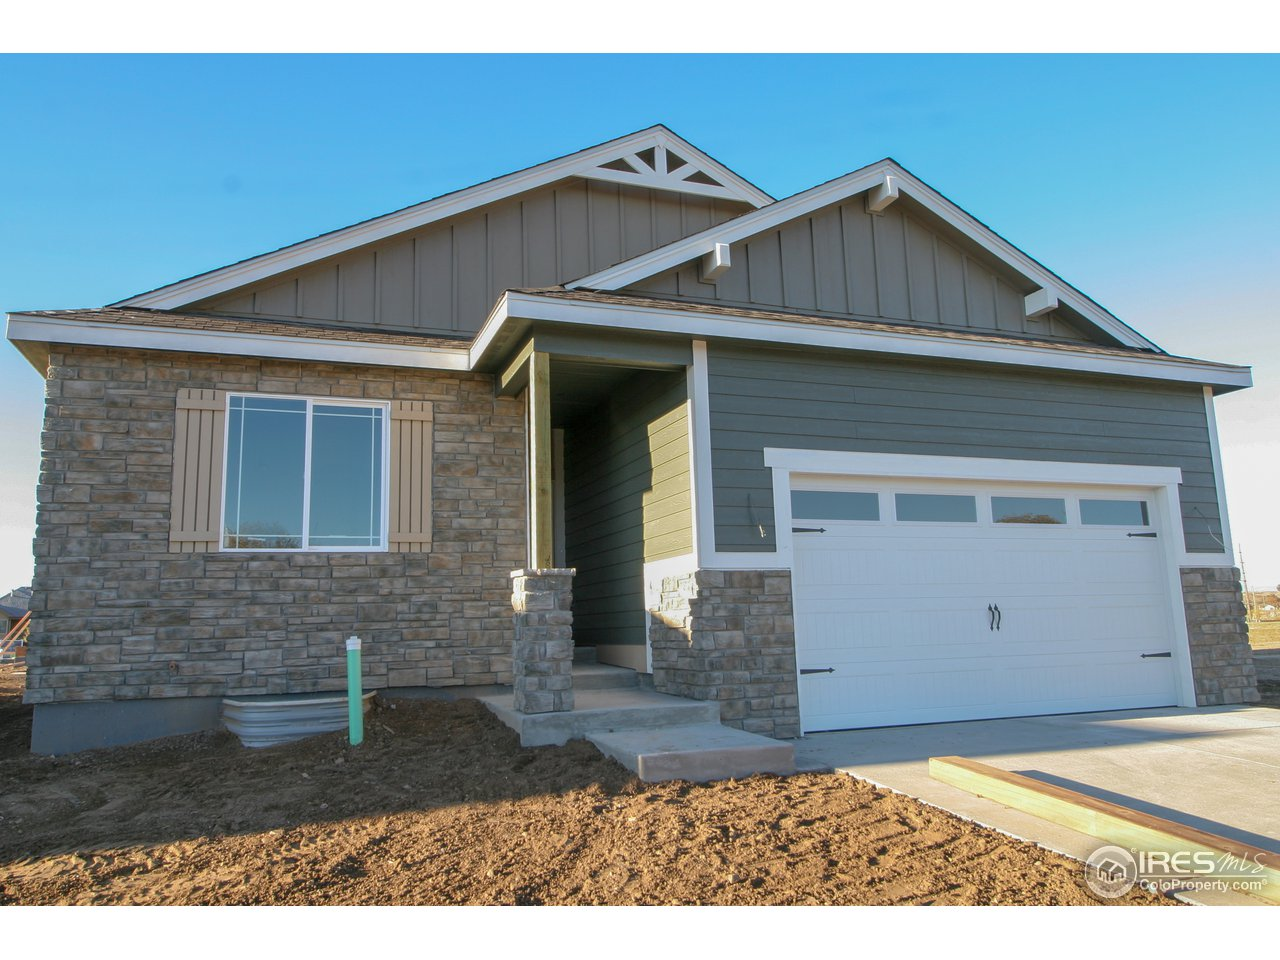 Brand new Baessler Home without the 6-month wait!  This open concept ranch features upgrades throughout with Luxe package, granite, upgraded appliances, great room fireplace, wood kitchen/dining/entry floors, air conditioning, 2-bedroom main level layout, covered patio, basement finish, and much more!  Low maintenance living with easy access to the Poudre River trail!  Home expected to be complete late-November, other quick delivery homes and pick-your-lot pre-sales available.